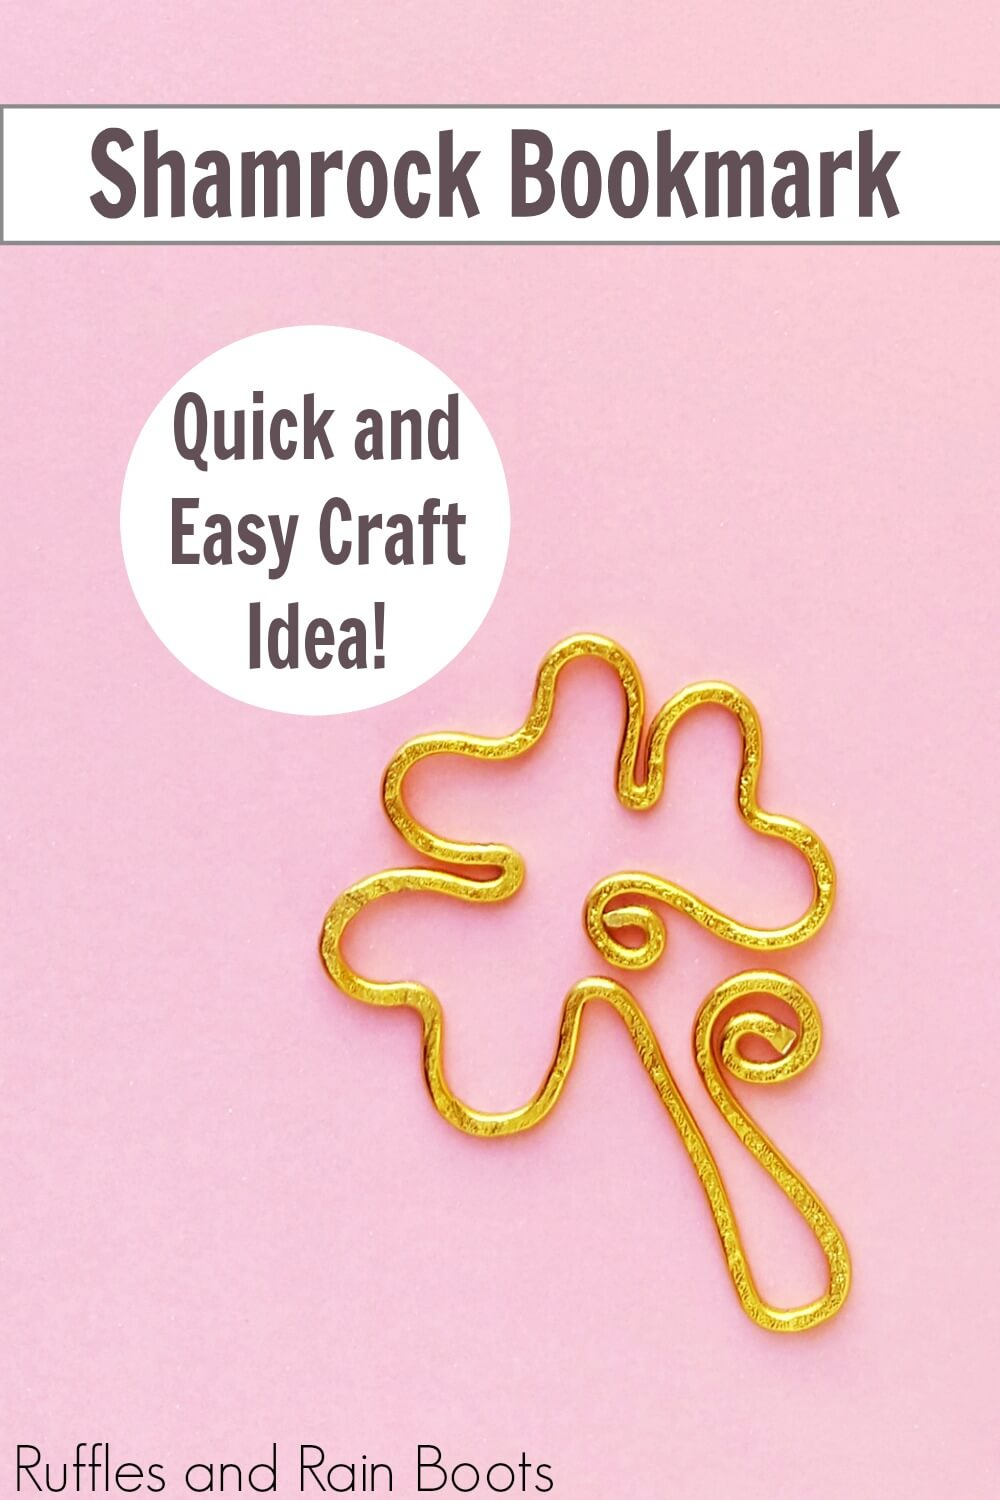 wire shamrock bookmark on pink background with text which reads shamrock bookmark